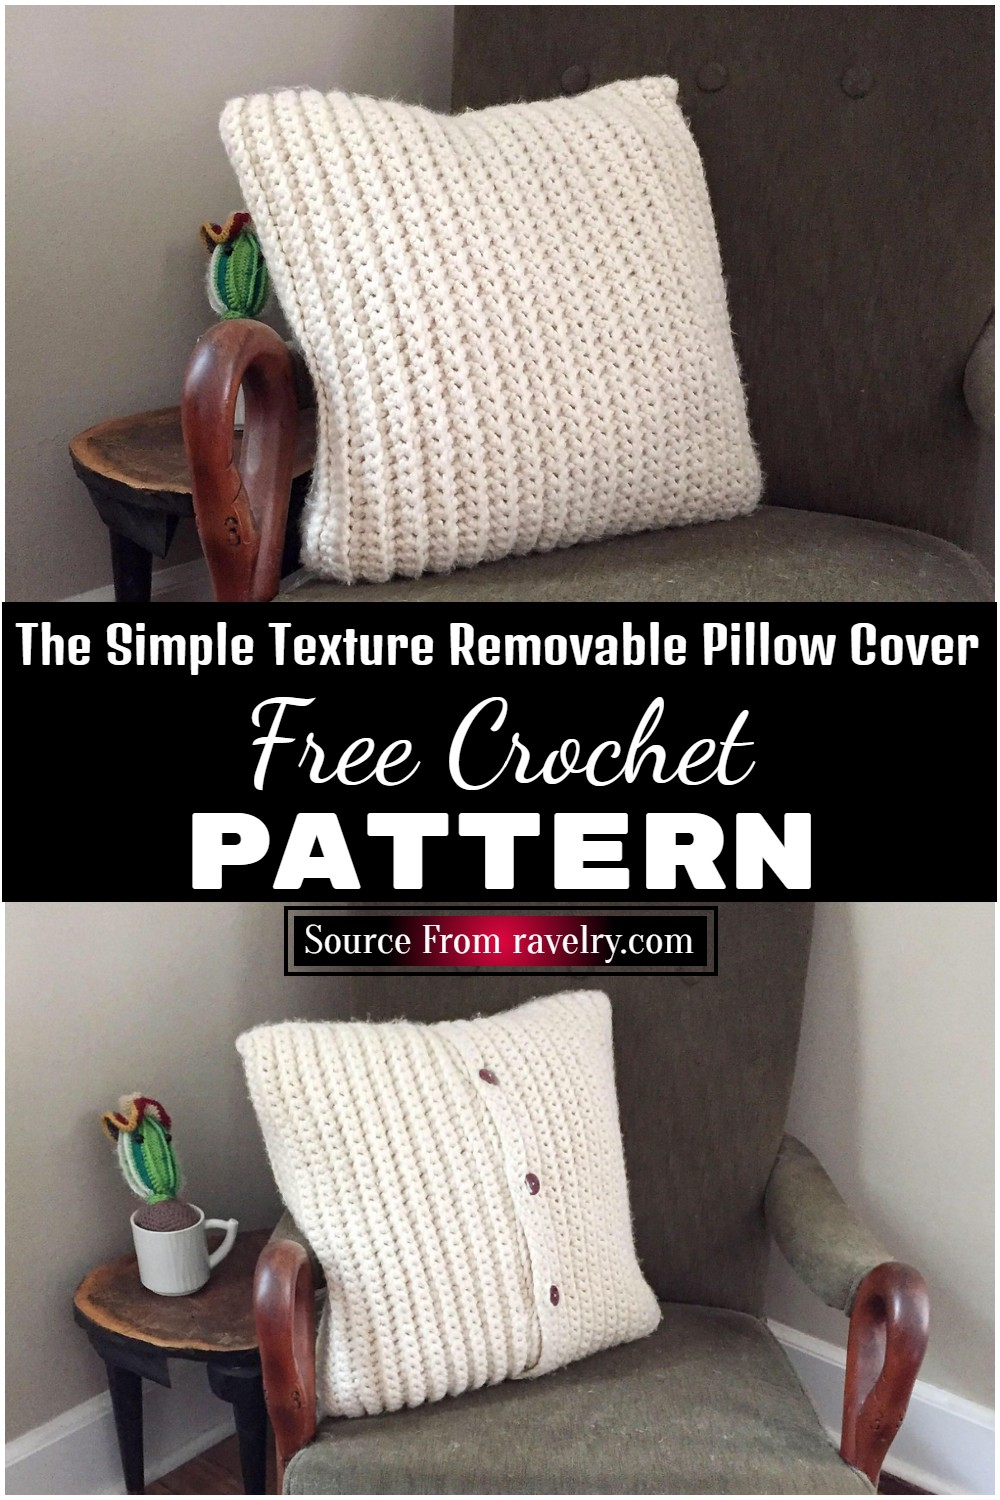 Free Crochet The Simple Texture Removable Pillow Cover Pattern